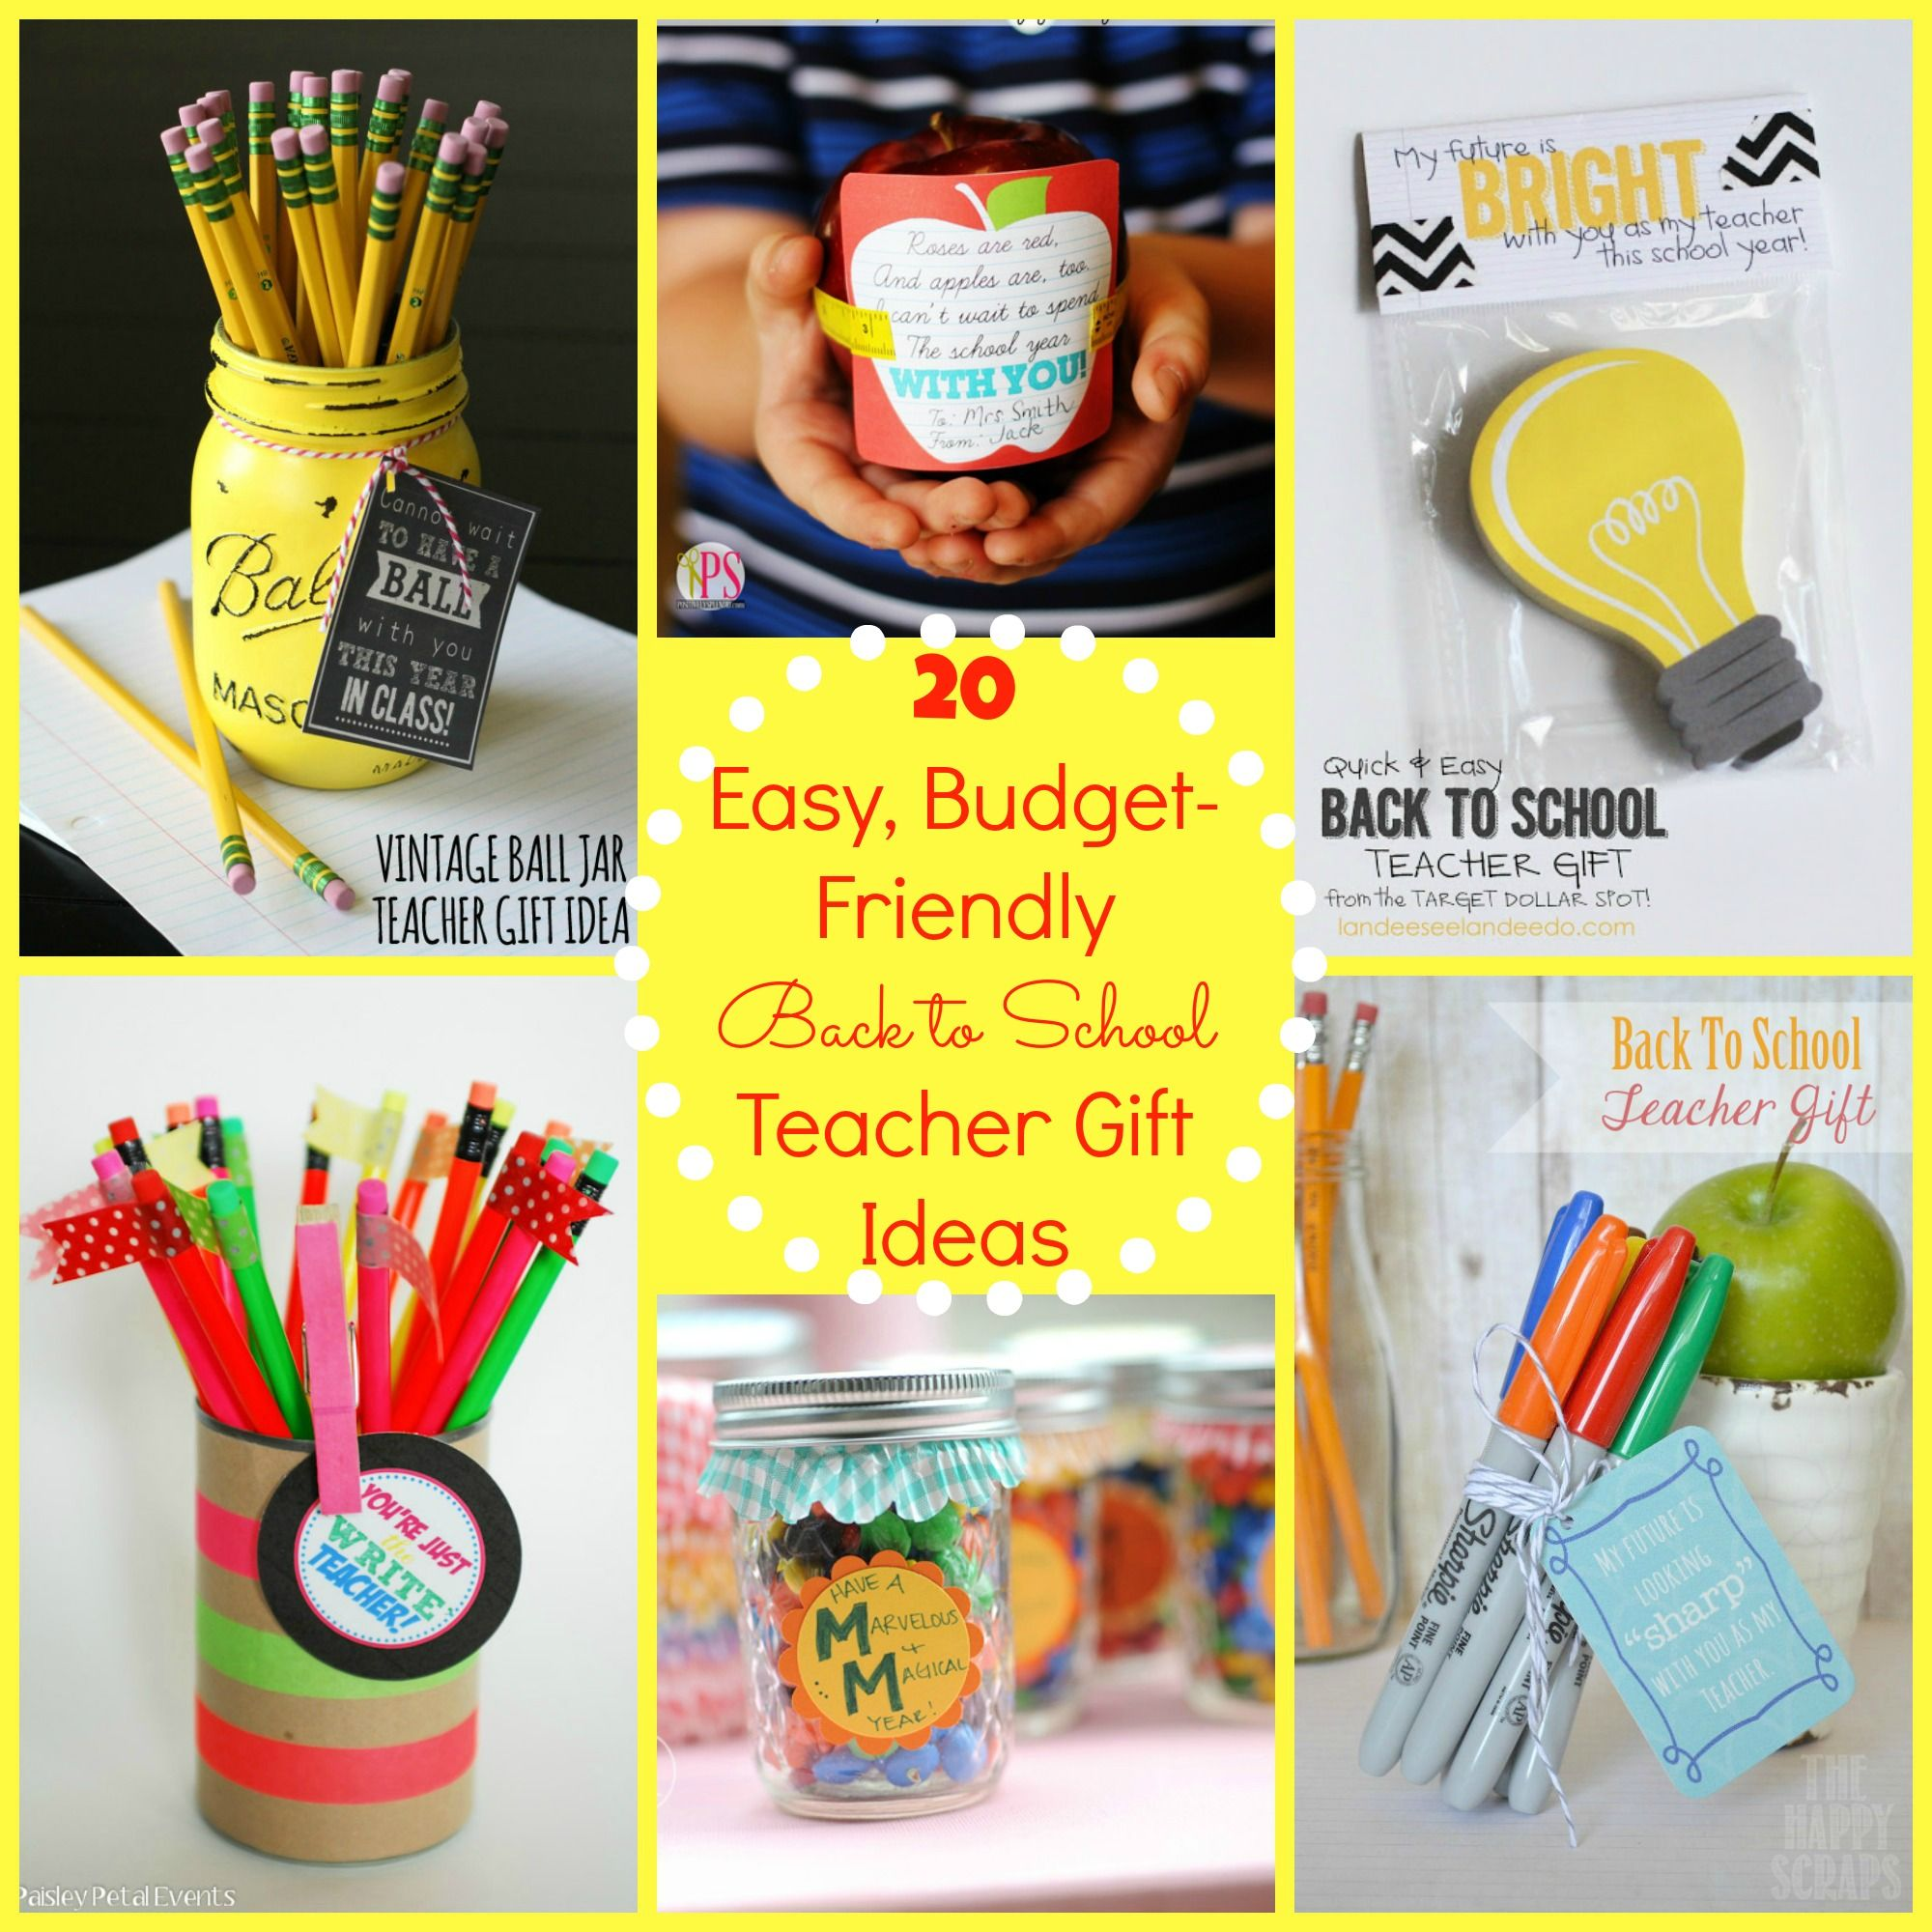 Back to School Gift Ideas for the Teacher | Free ...